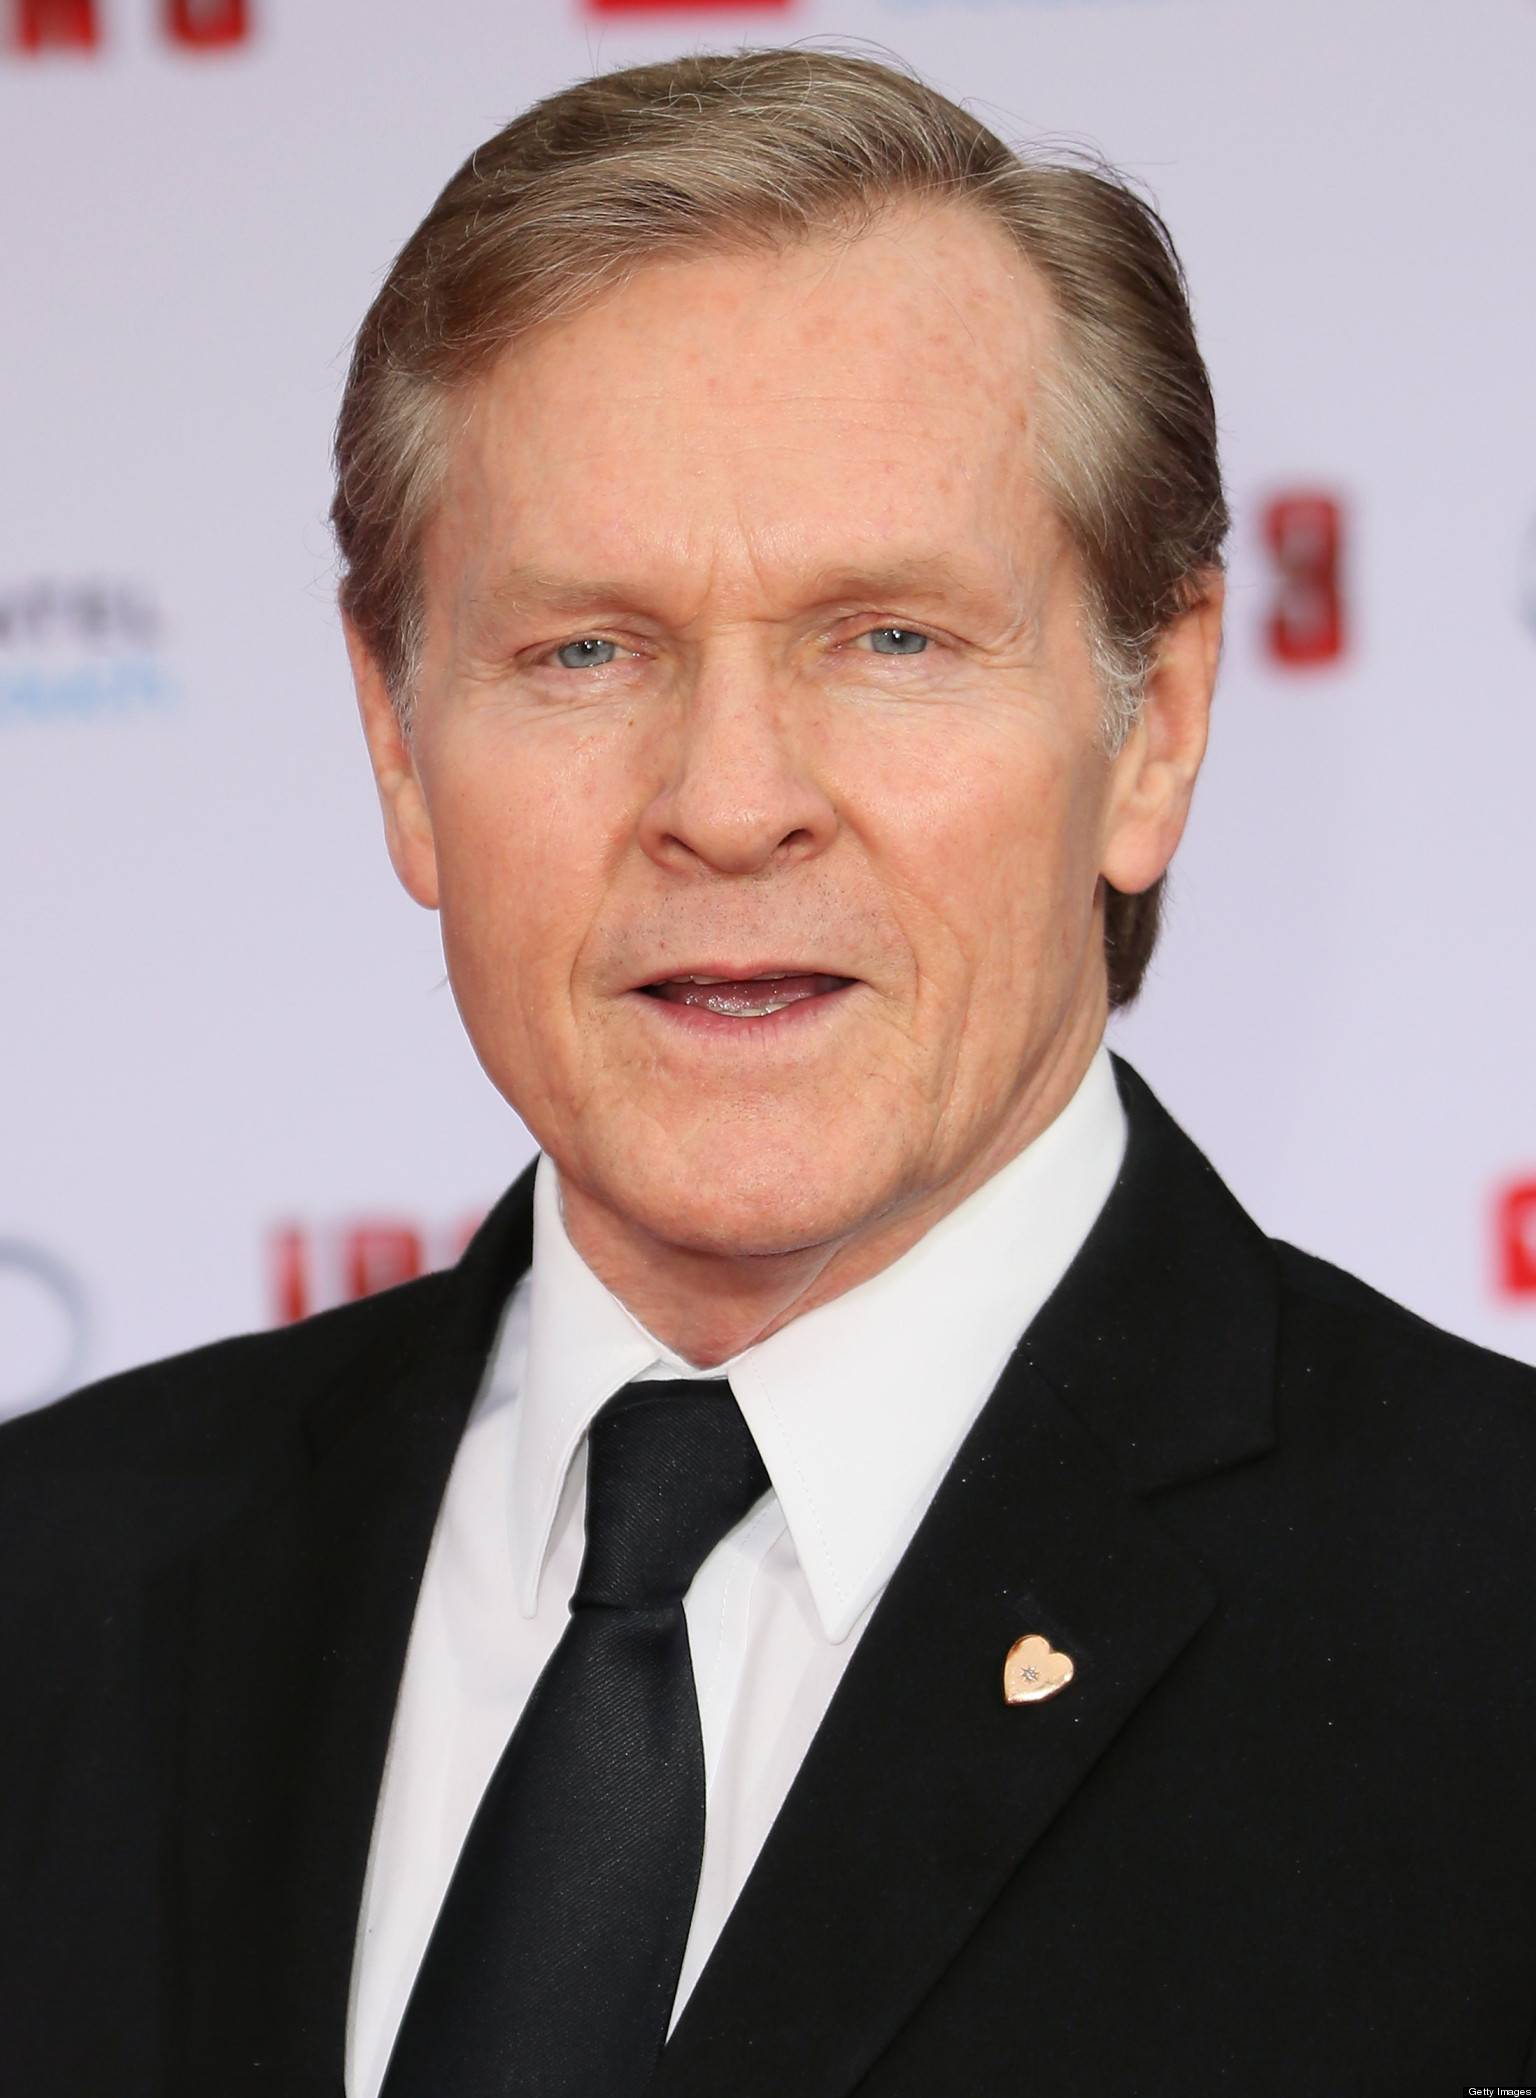 William Sadler earned a  million dollar salary, leaving the net worth at 1 million in 2017